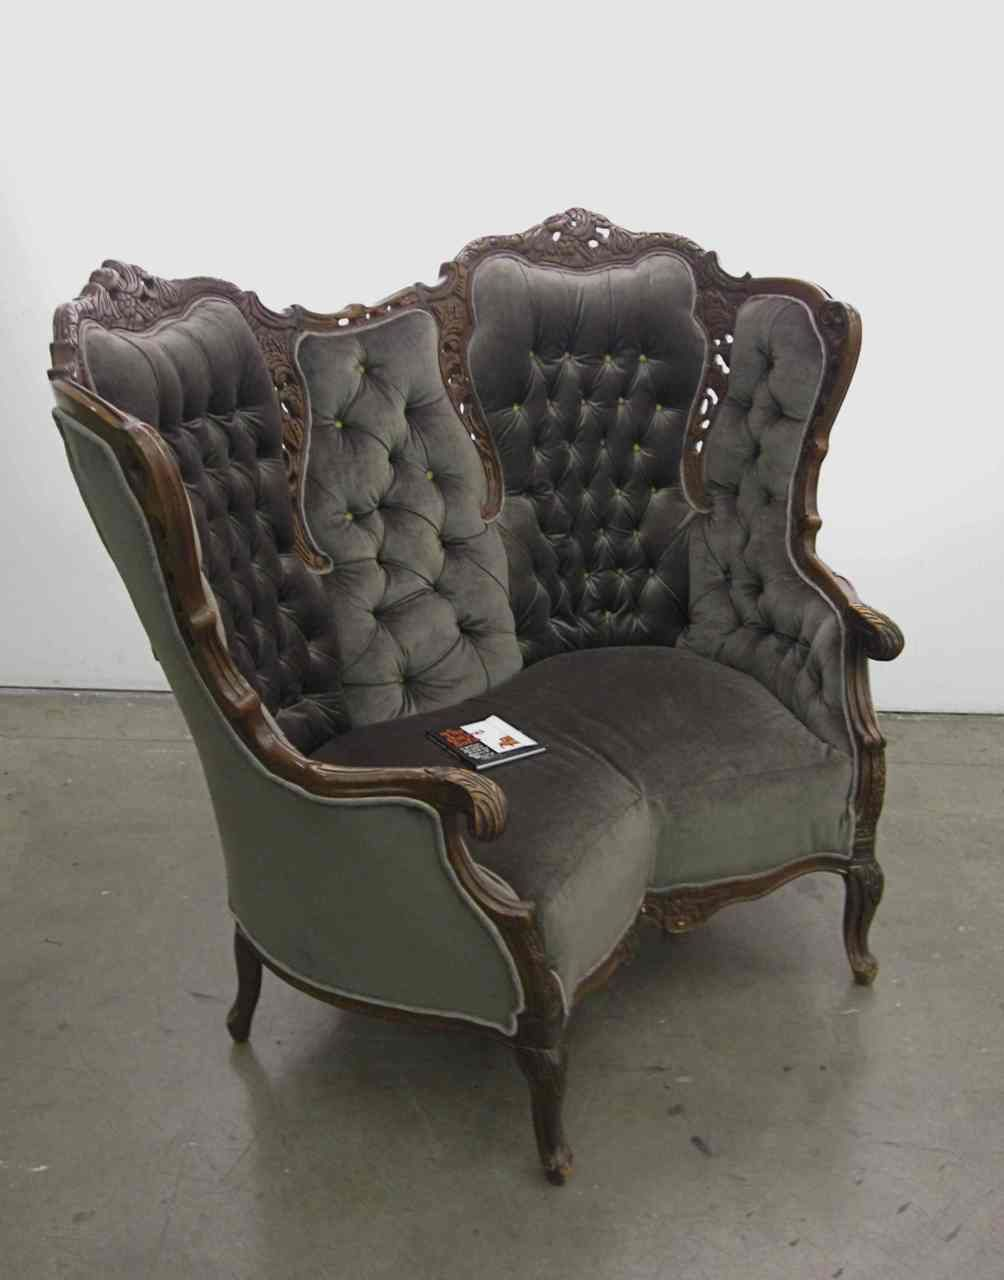 Antique bucket chair - Newenglishconception Victorian Chair